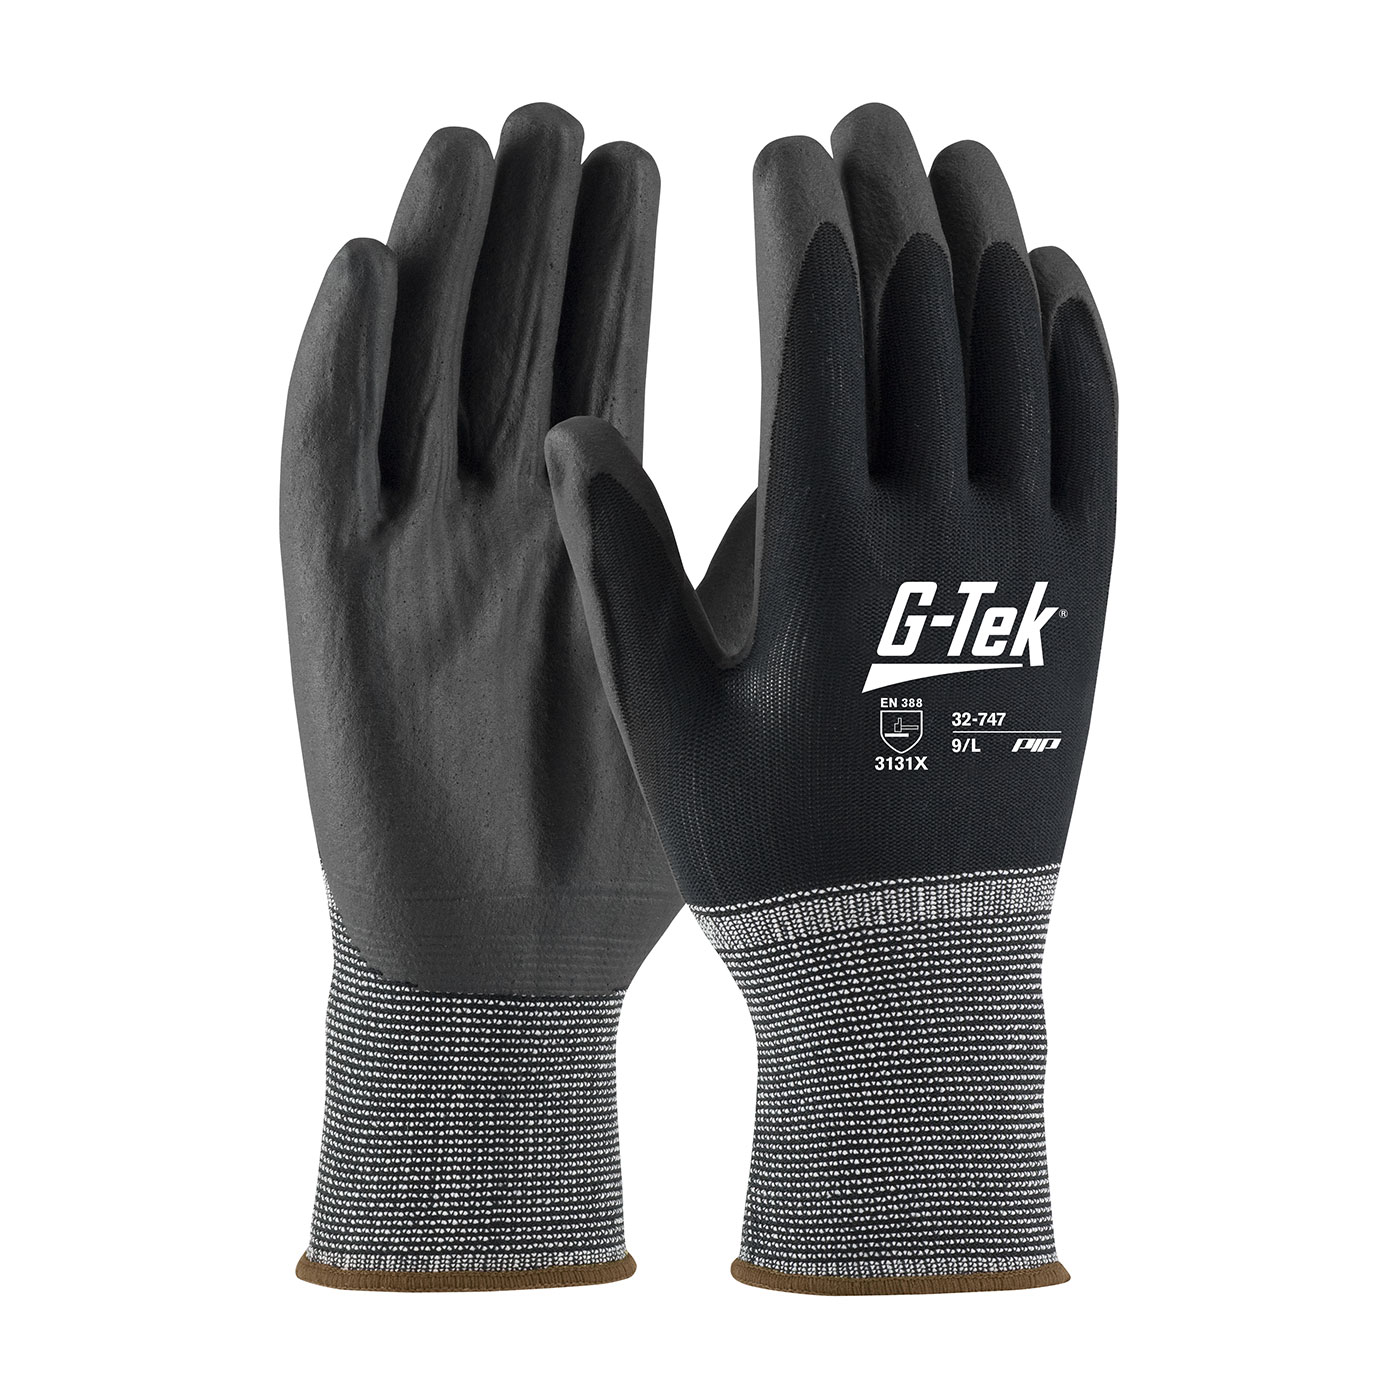 Specialty Pvc Blends On Gloves Protective Industrial